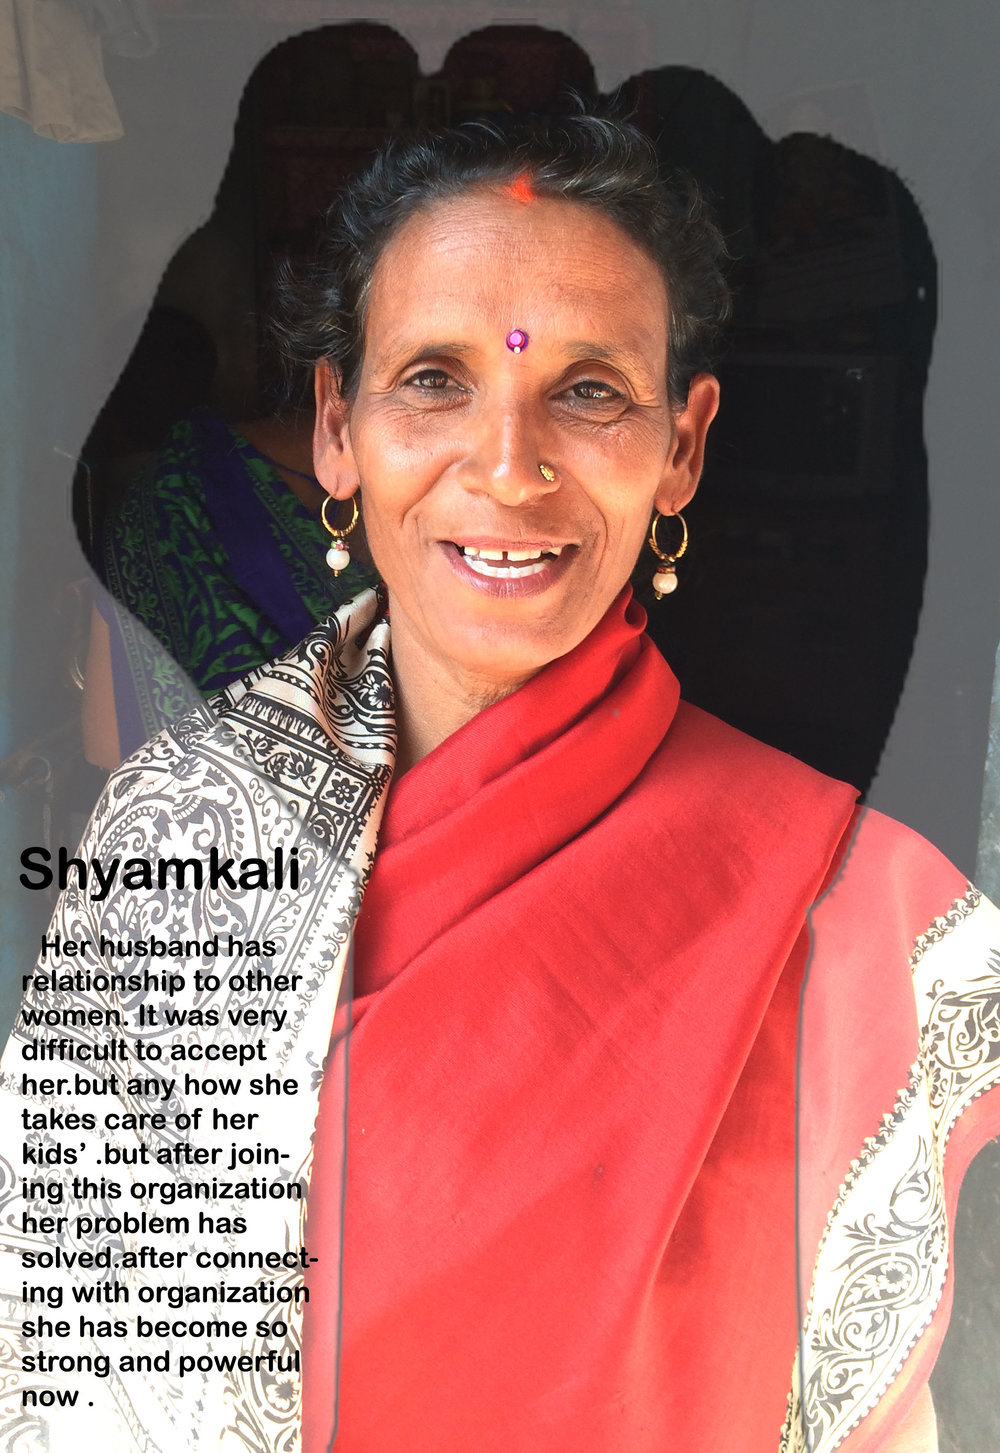 Shyam kali women human right defender--.jpg